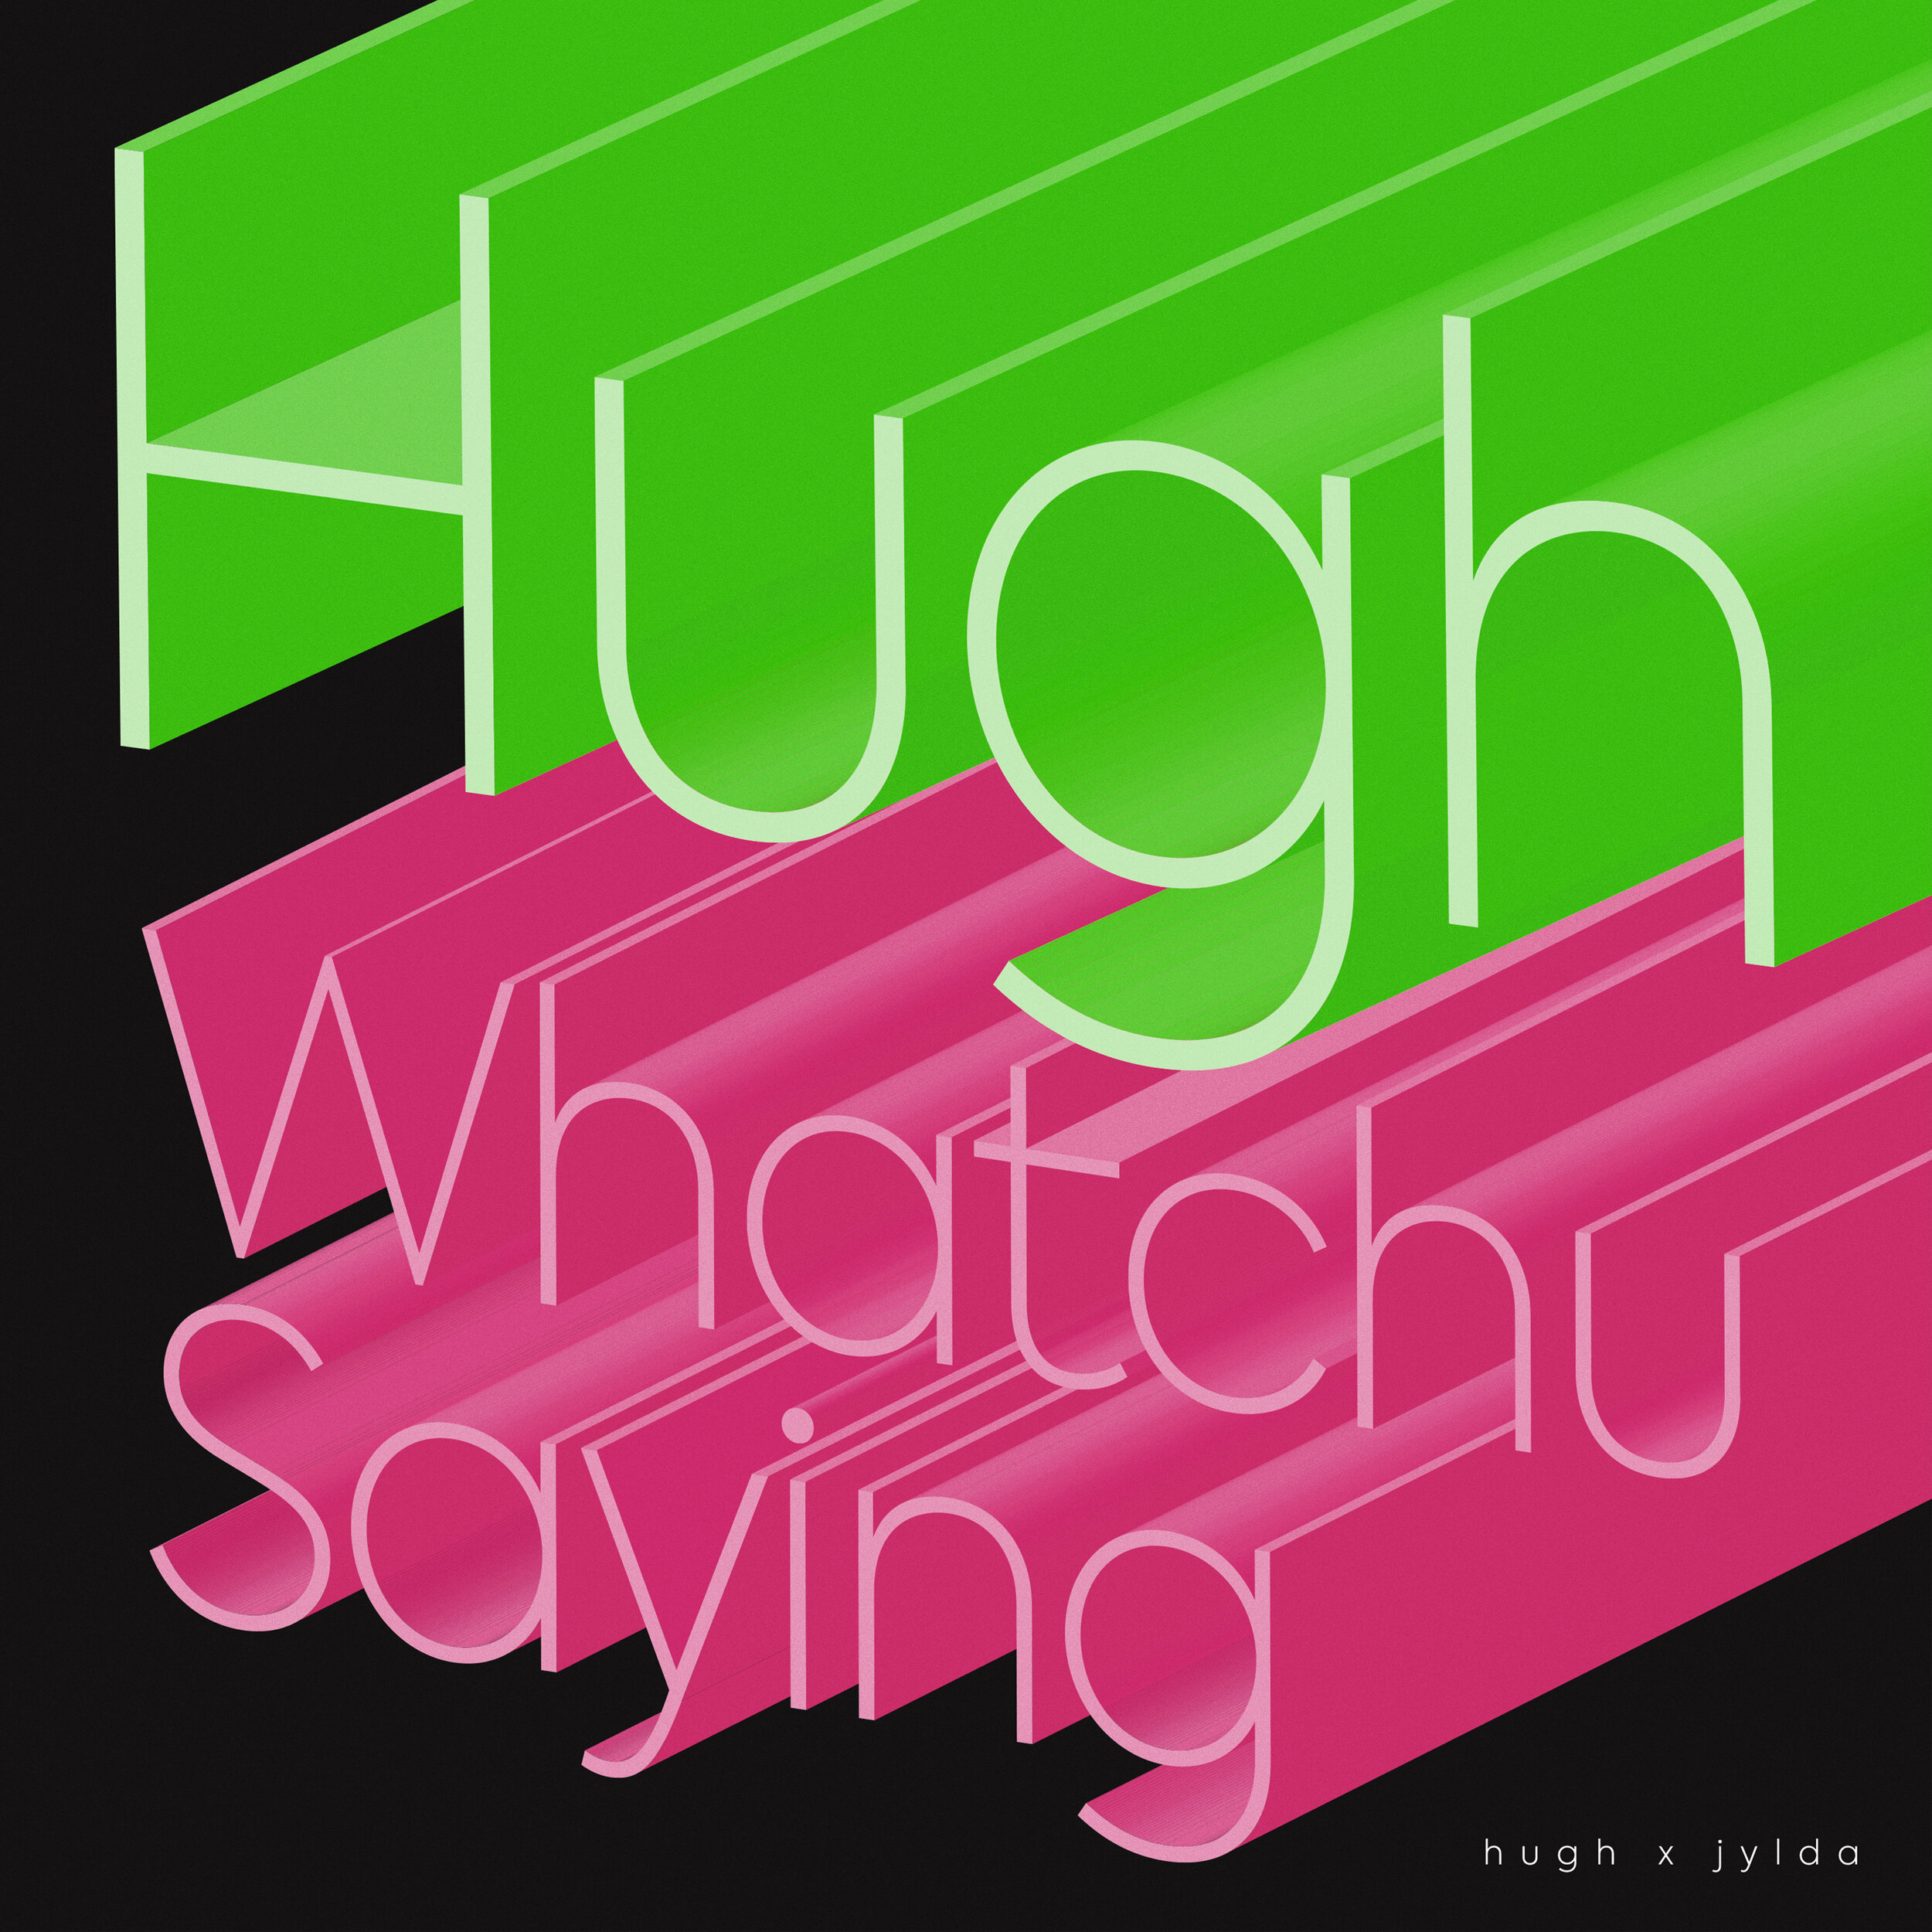 Hugh_WhatchuSaying.Jpg